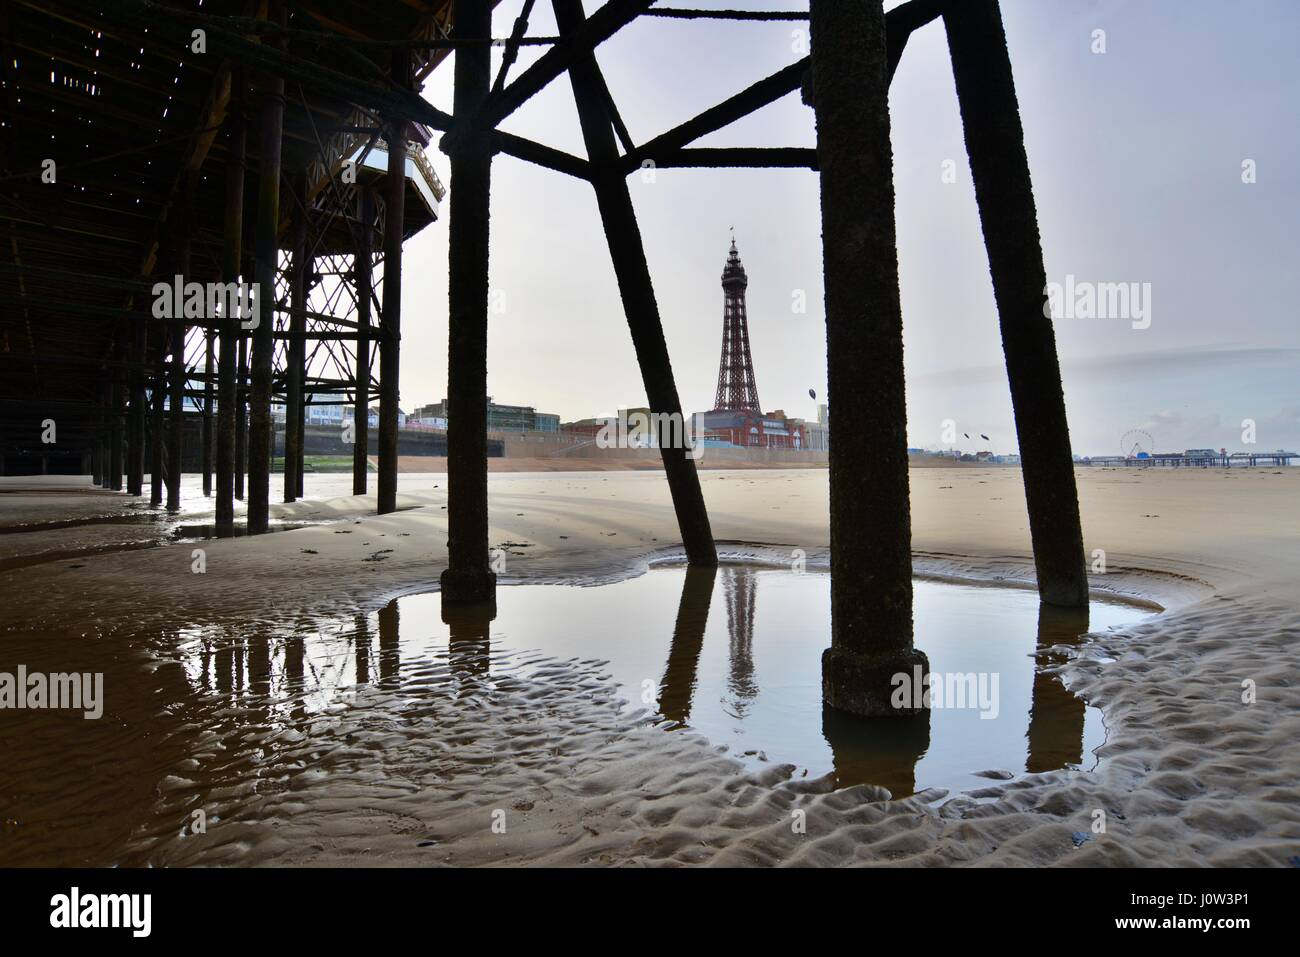 Blackpool Tower, Lancashire, UK. Bild: Scott Bairstow Stockfoto